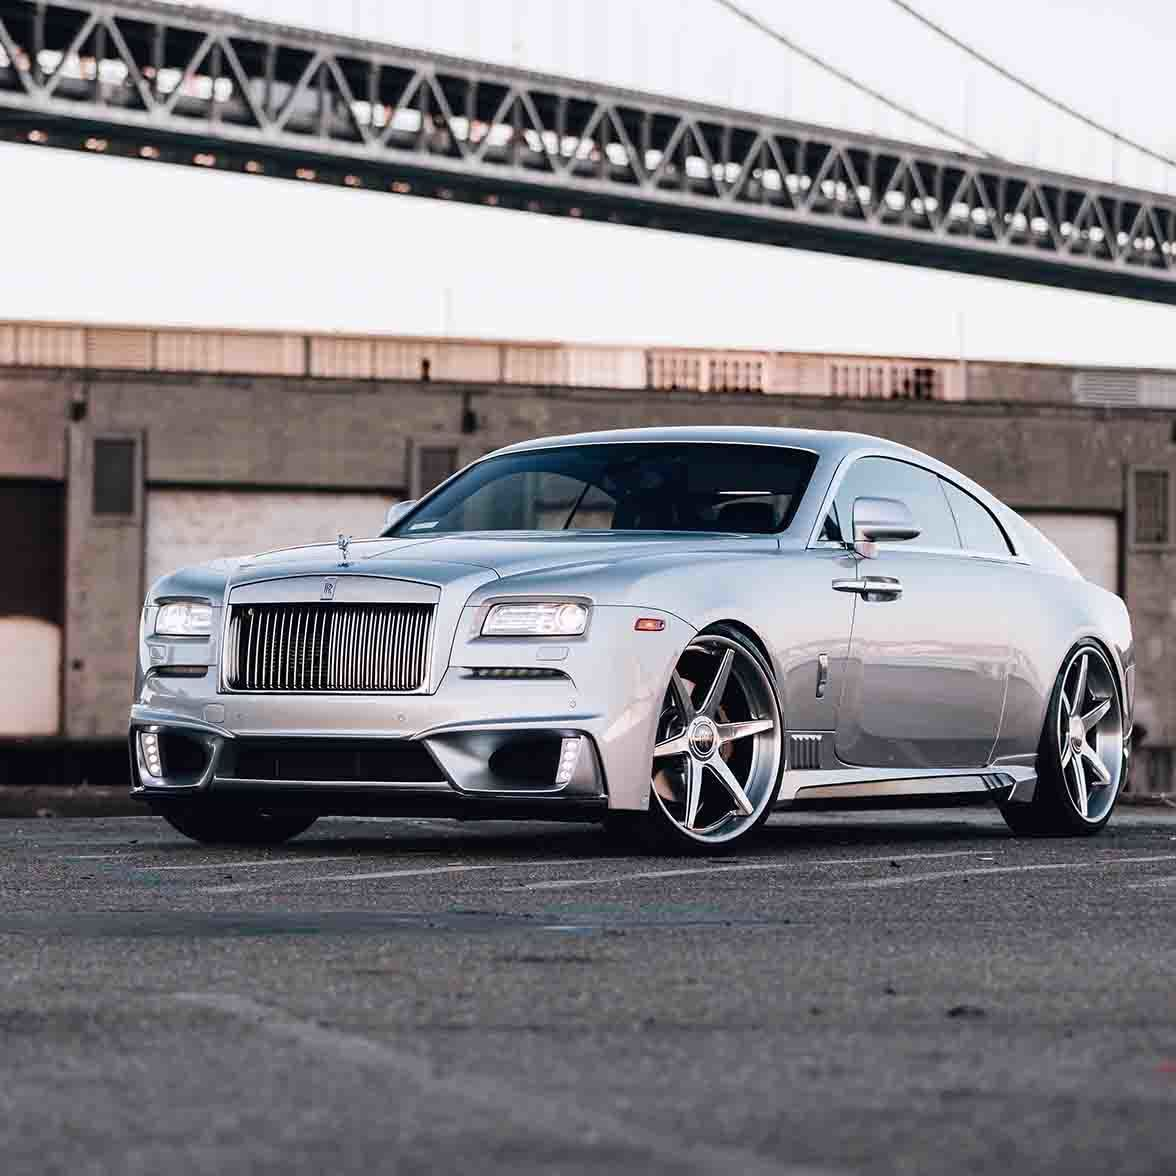 images-products-1-2889-232975177-silver-rolls-royce-wraith-brixton-forged-s60-targa-series-forged-wheels-brushed-gloss-010.jpg